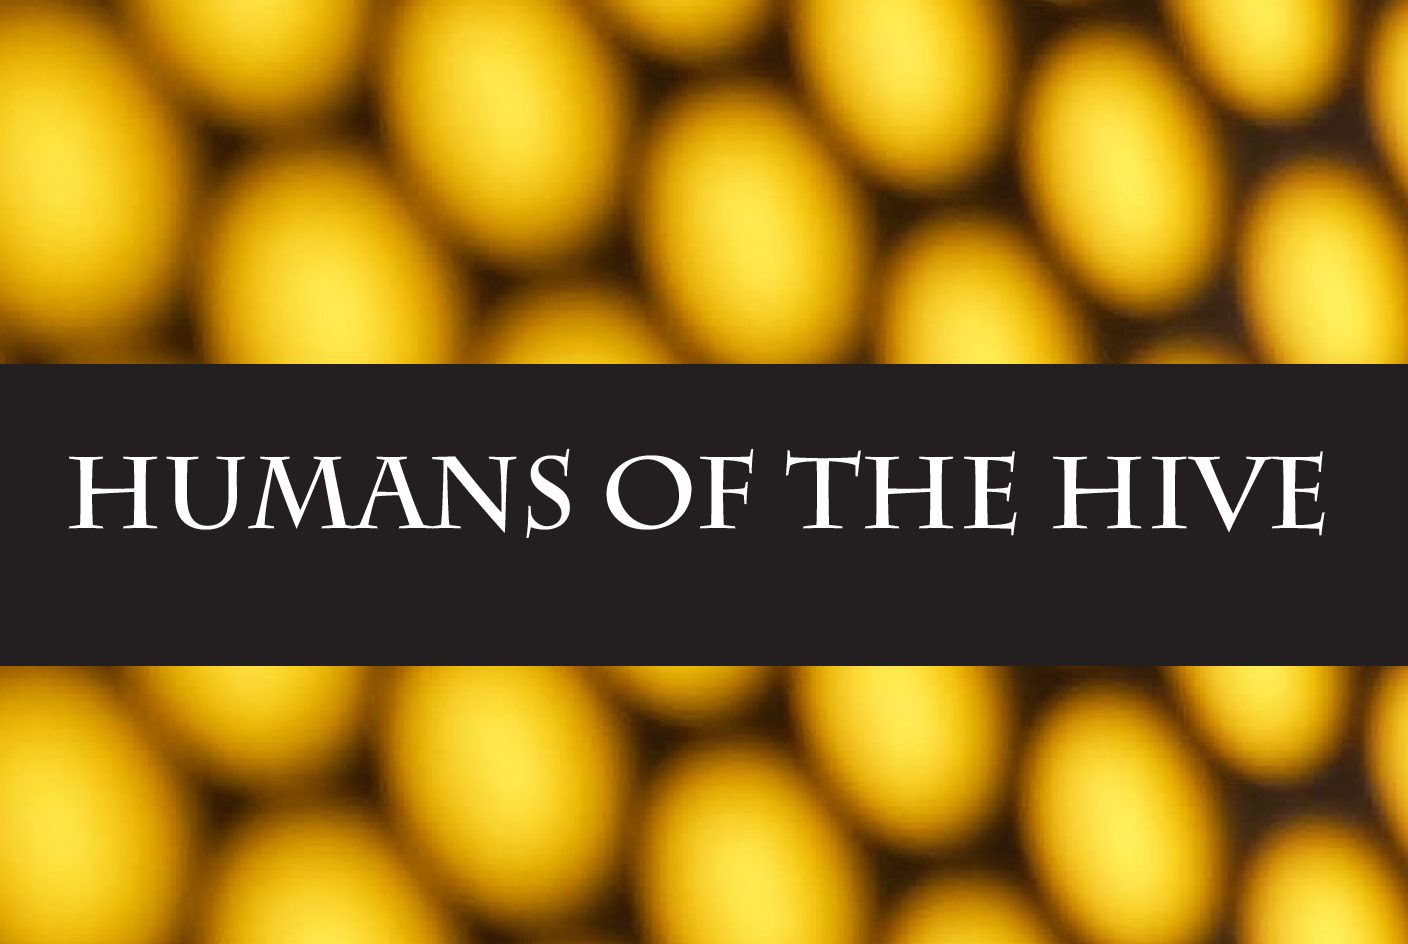 Humans of the Hive